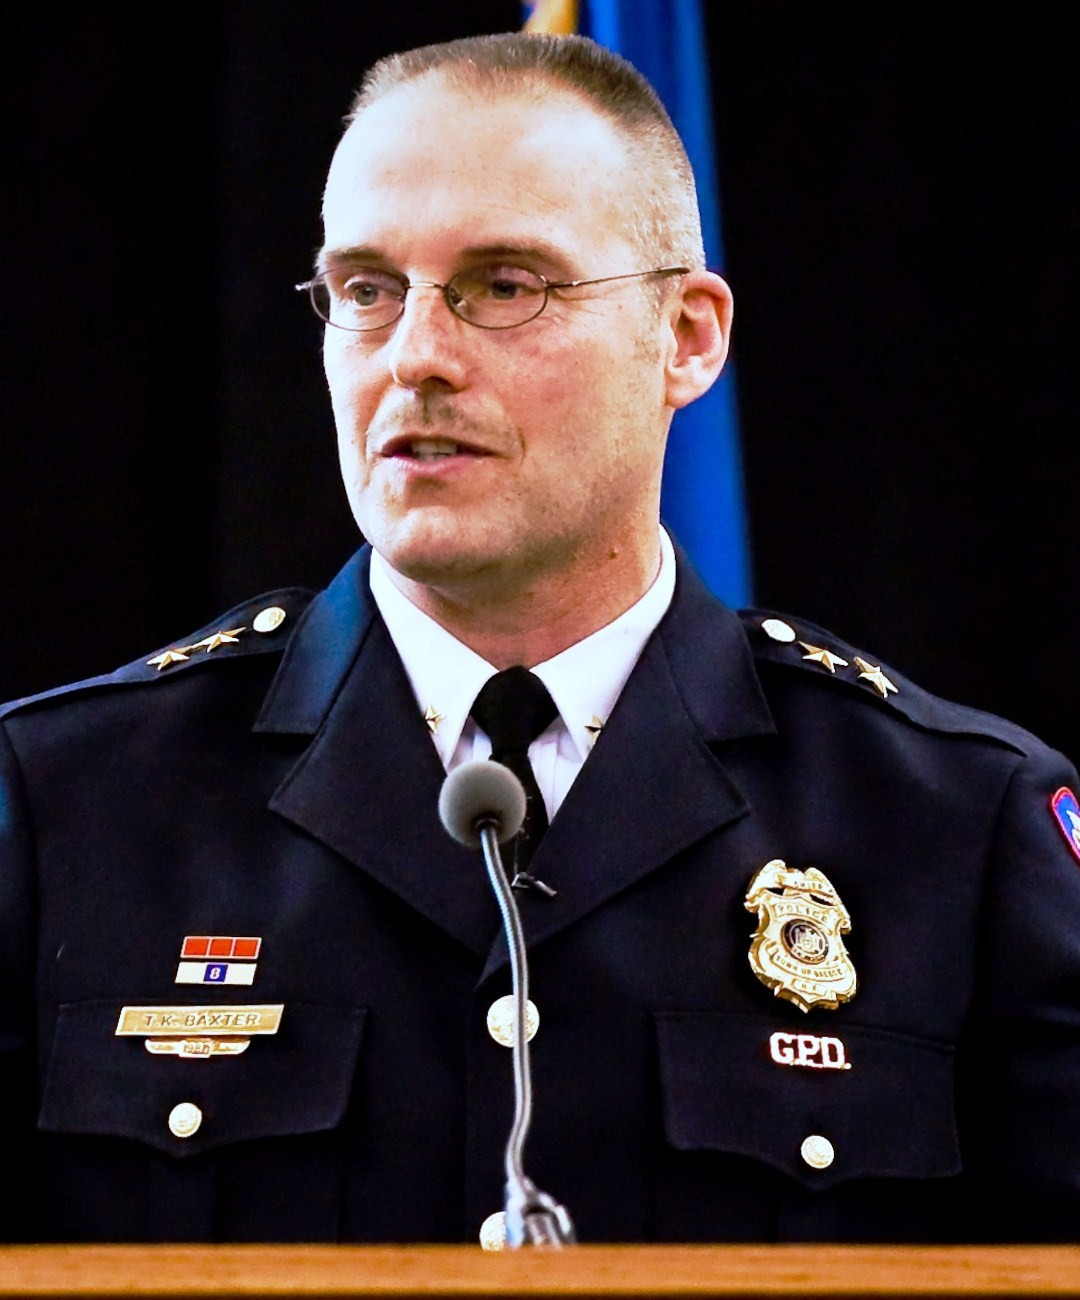 Greece Chief of Police Stepping Down; Welcomed as Veterans Outreach Center's Executive Officer